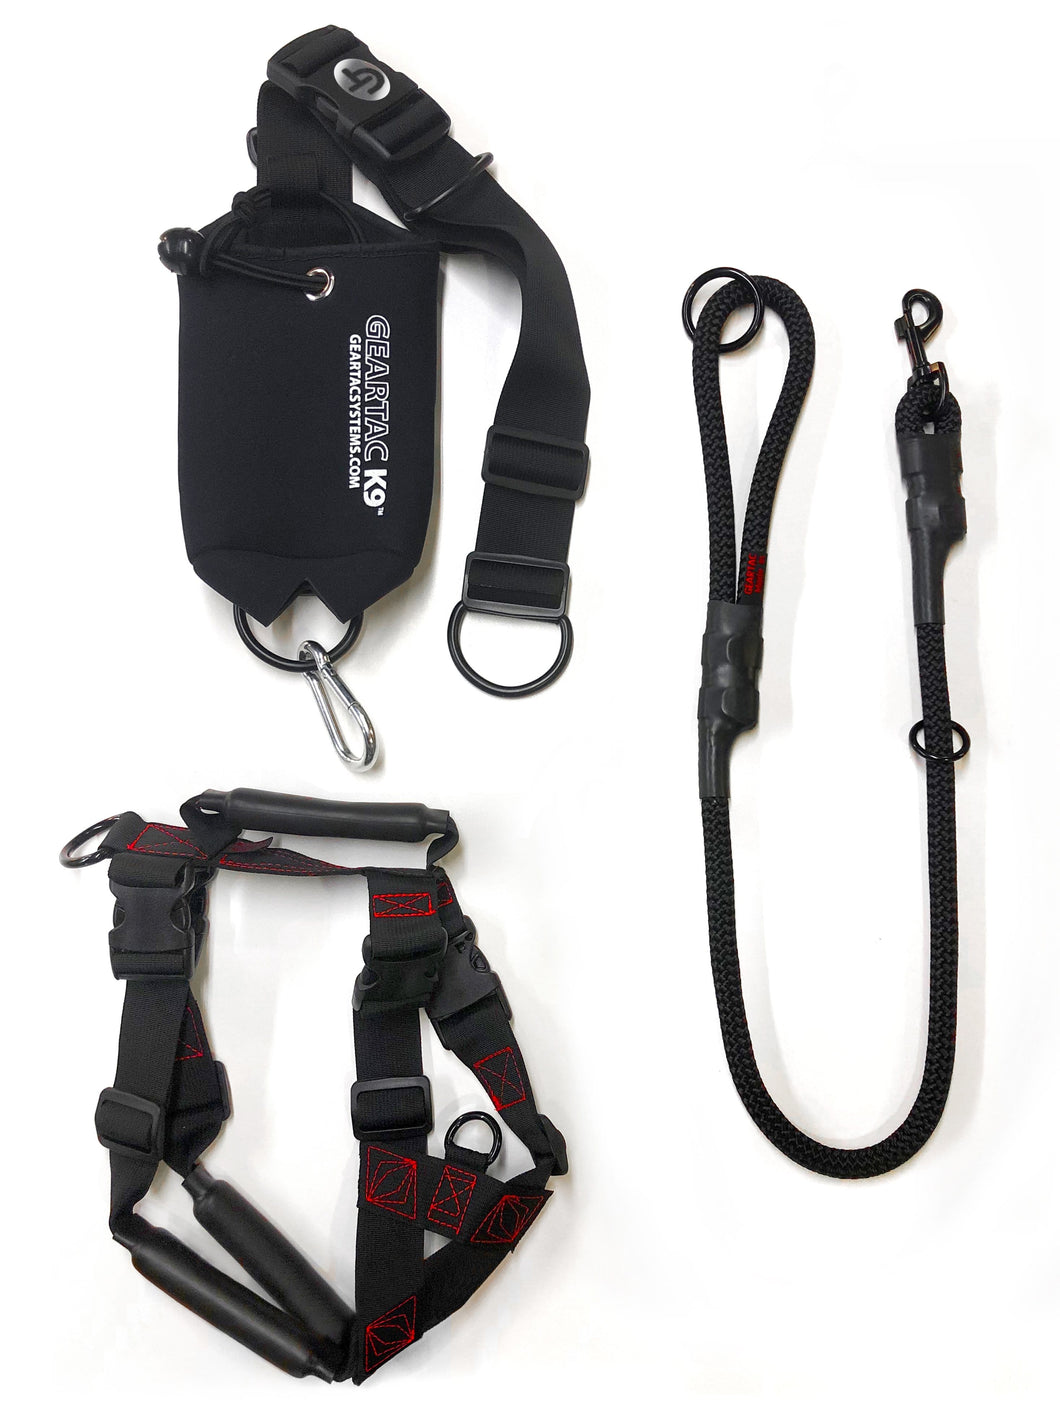 GEARTAC WALKING PACKAGE